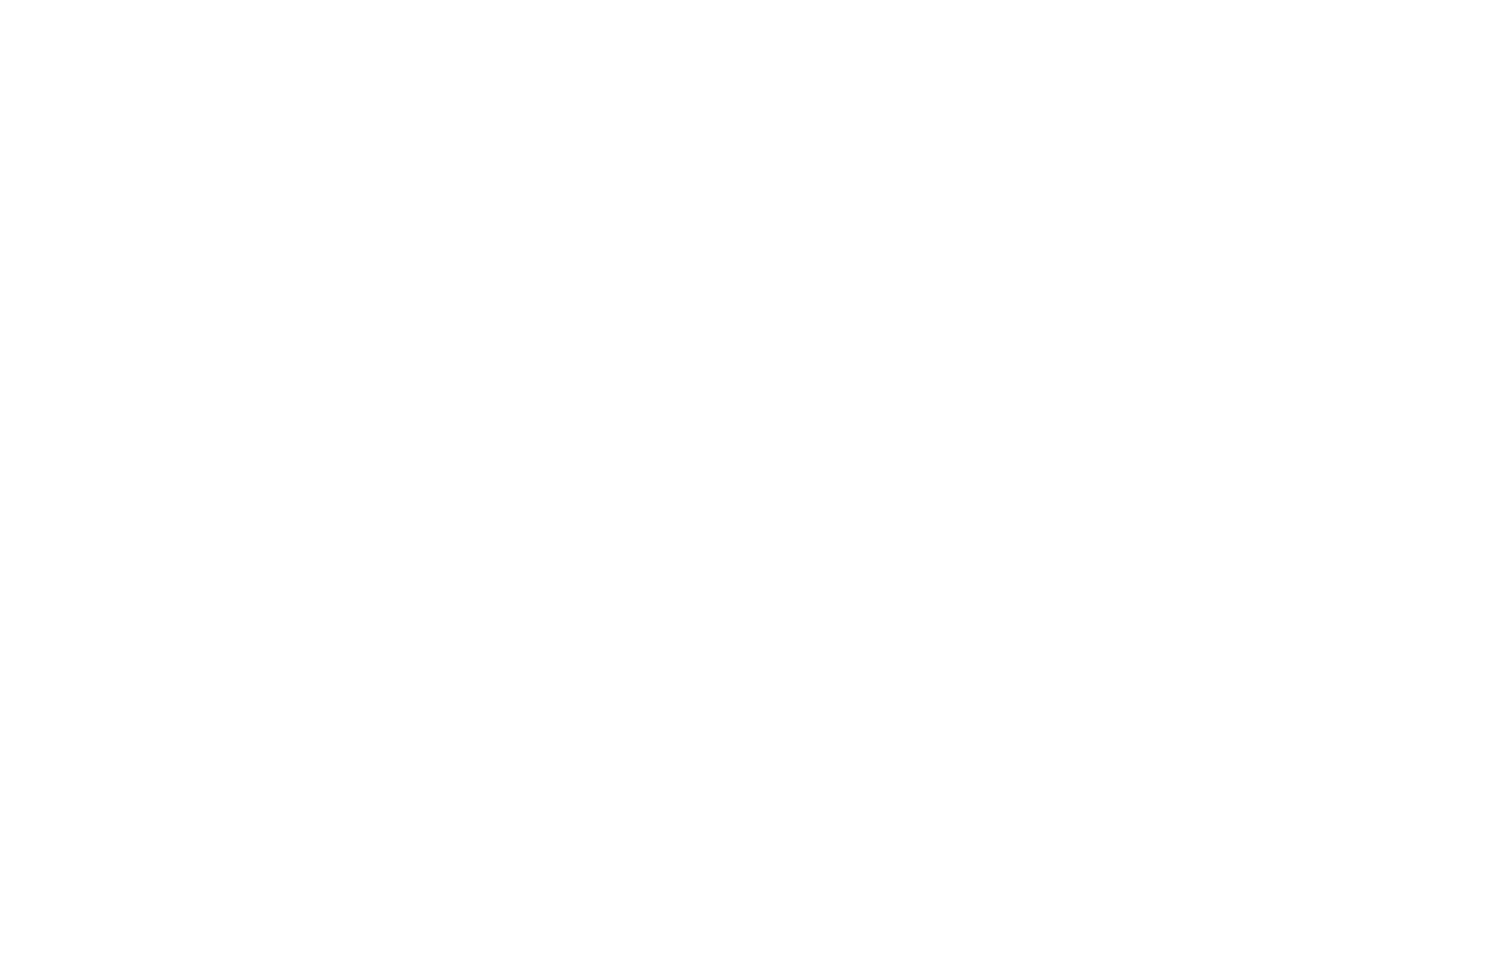 Roots of American Music